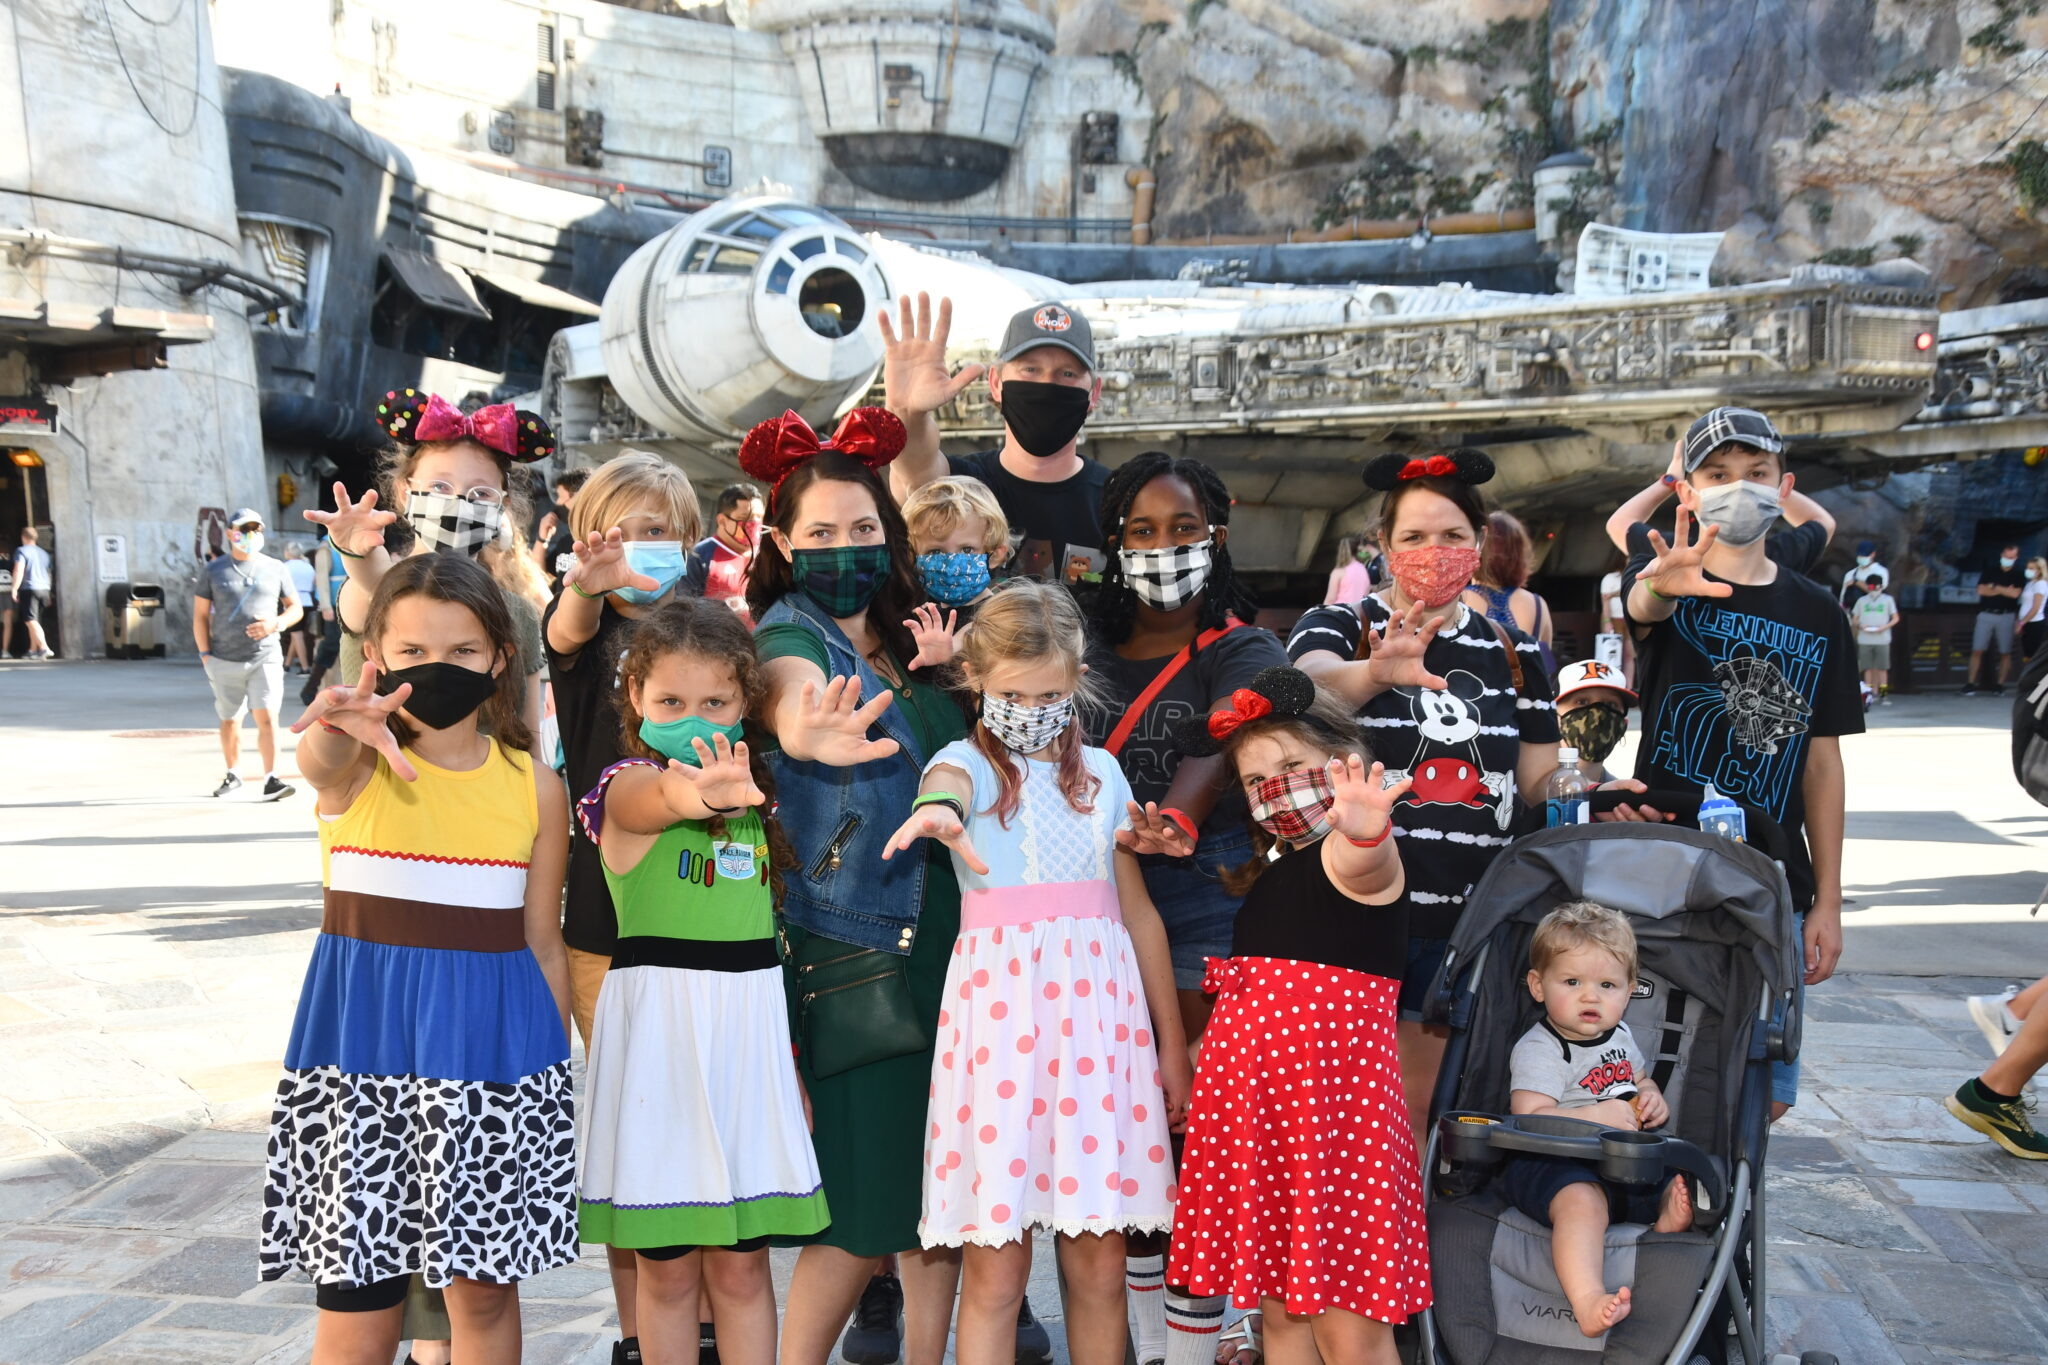 Is it Safe to Visit Disney World During a Pandemic? All Things with Purpose Sarah Lemp 11